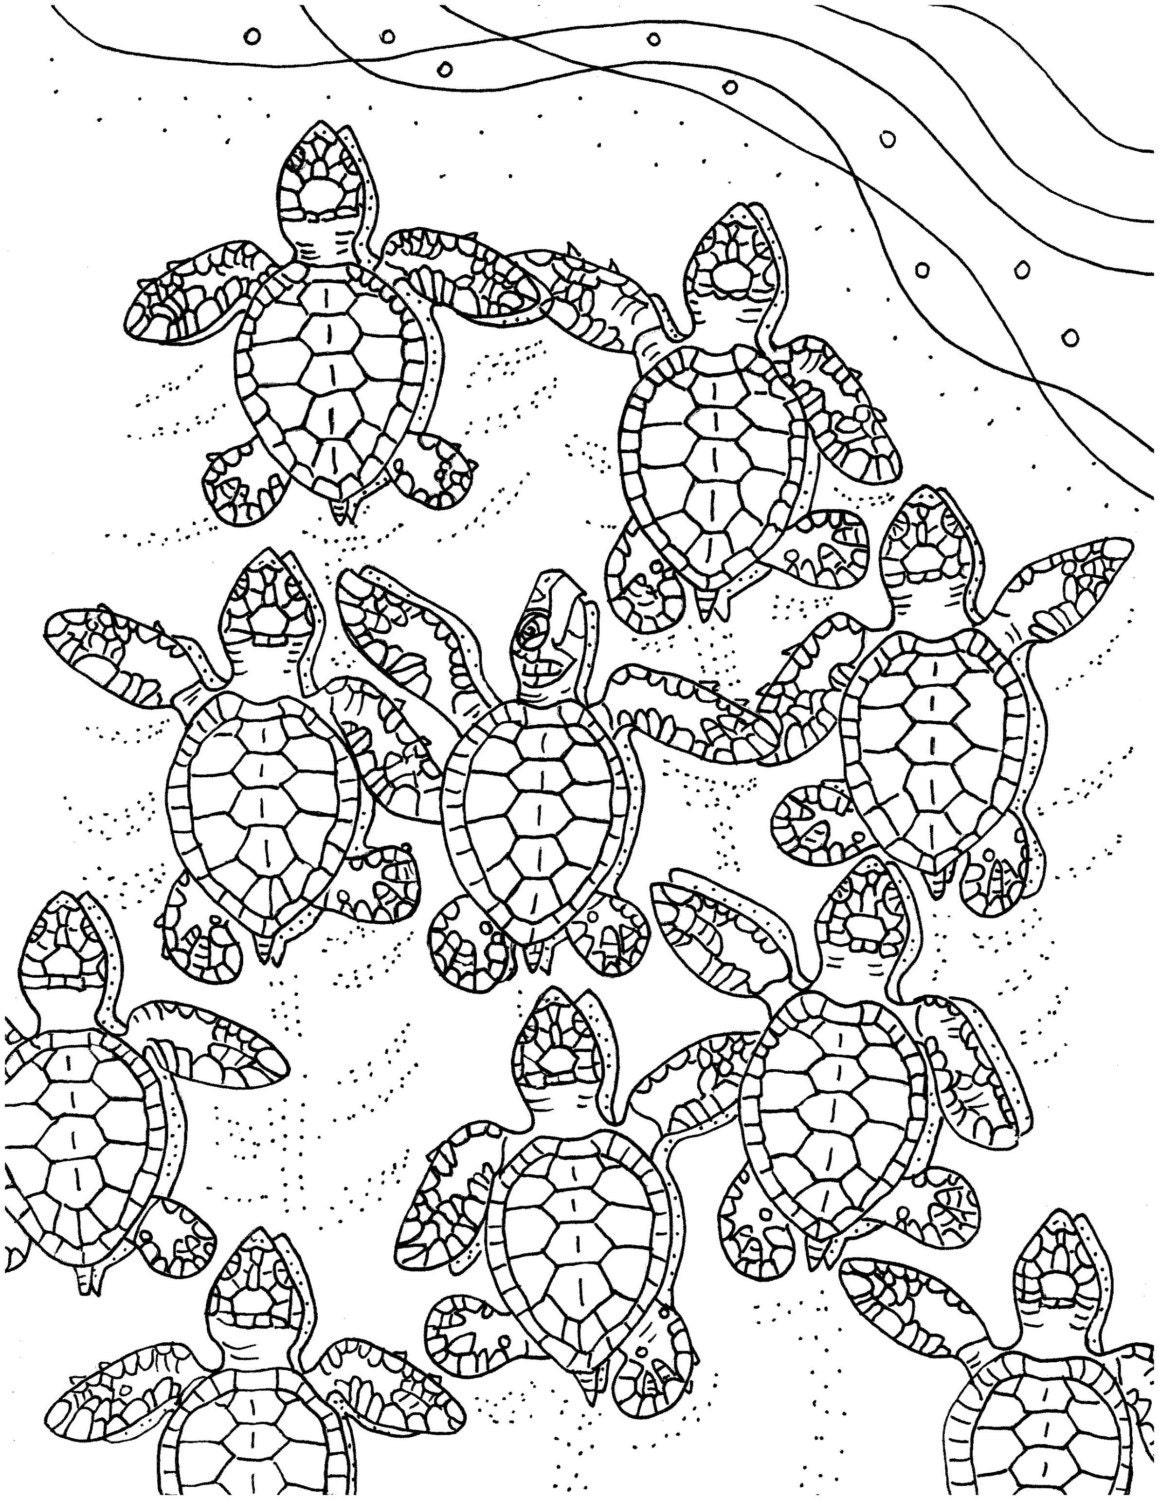 Simplicity image pertaining to sea turtle printable